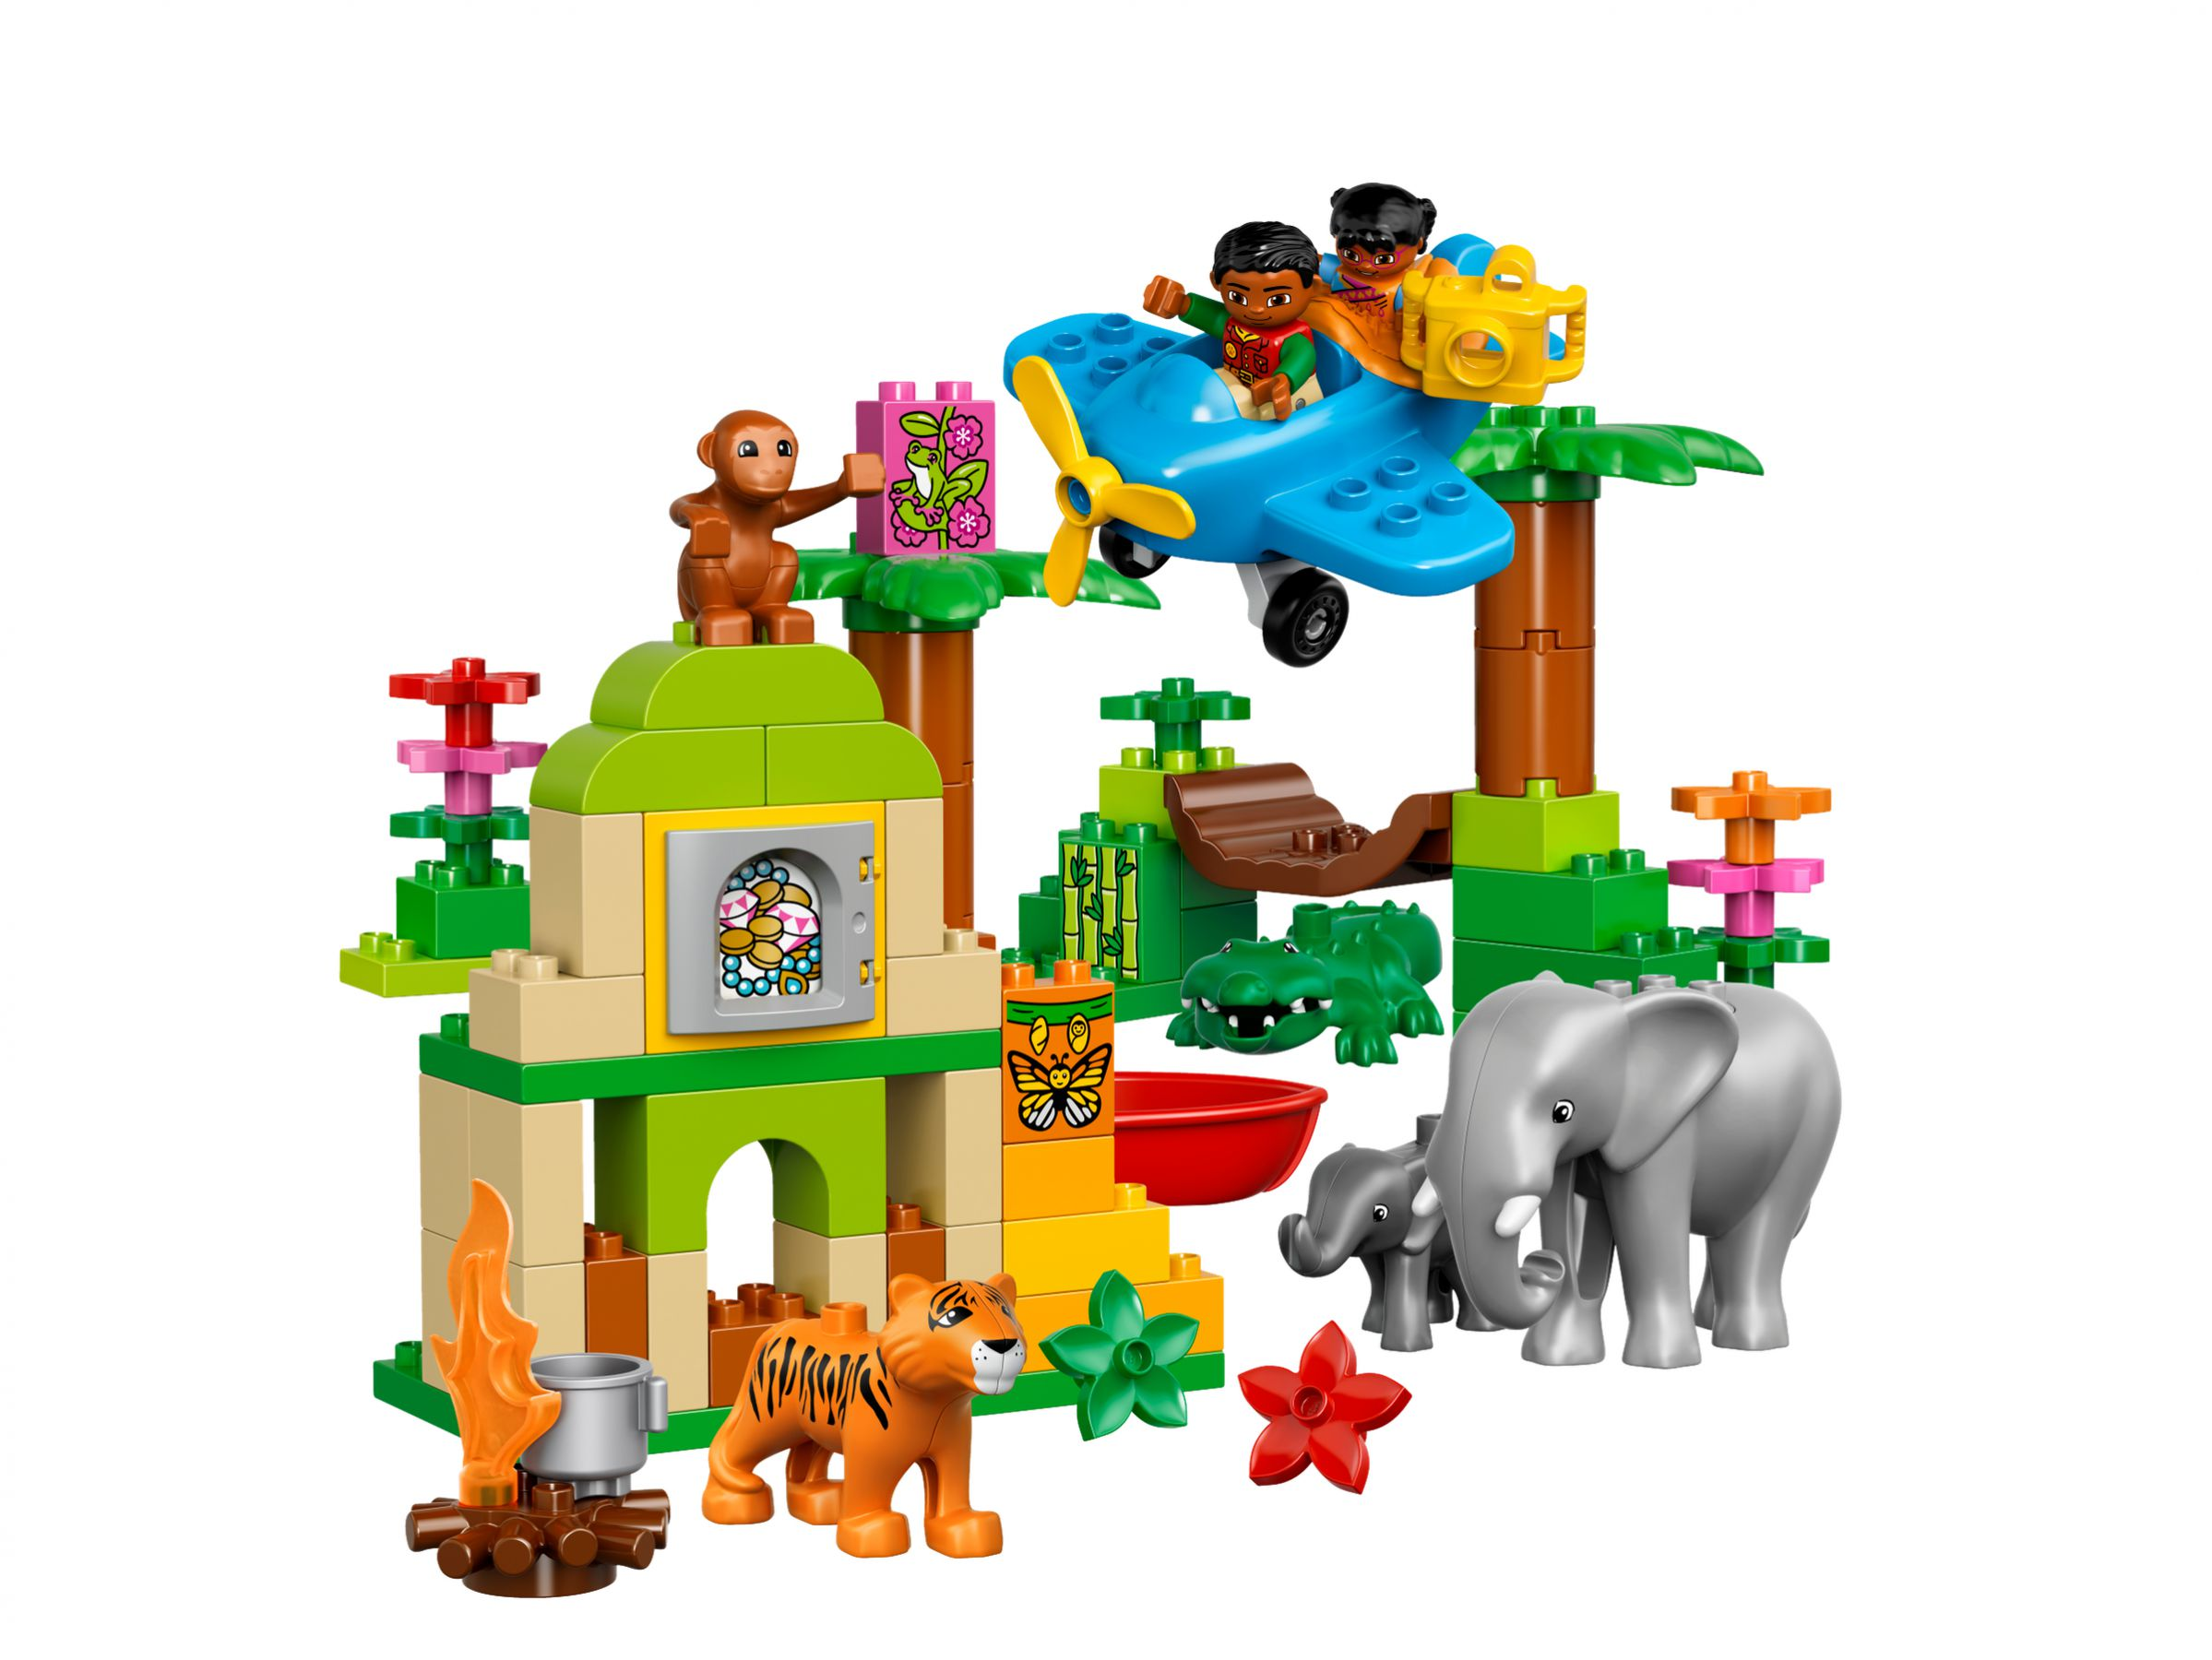 lego 10804 dschungel duplo 2016 jungle brickmerge. Black Bedroom Furniture Sets. Home Design Ideas